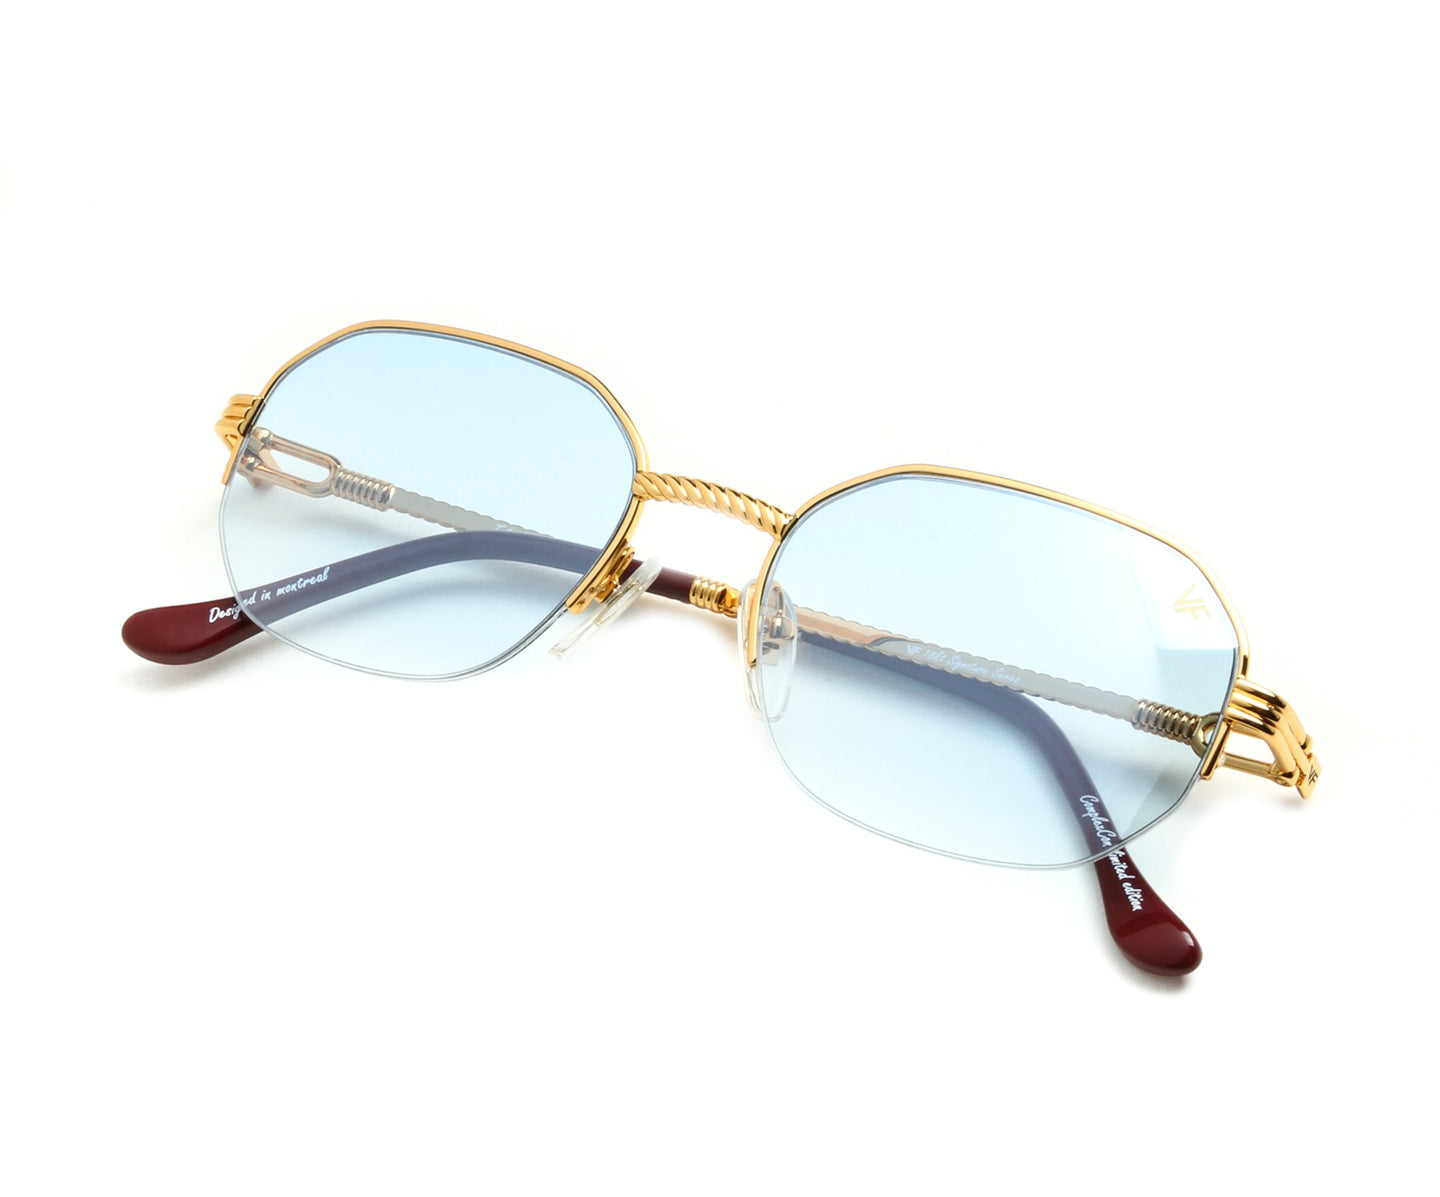 VF Hustler Half Rim 18KT Gold (Tiffany Blue) Thumb, VF Half-Rim , glasses frames, eyeglasses online, eyeglass frames, mens glasses, womens glasses, buy glasses online, designer eyeglasses, vintage sunglasses, retro sunglasses, vintage glasses, sunglass, eyeglass, glasses, lens, vintage frames company, vf